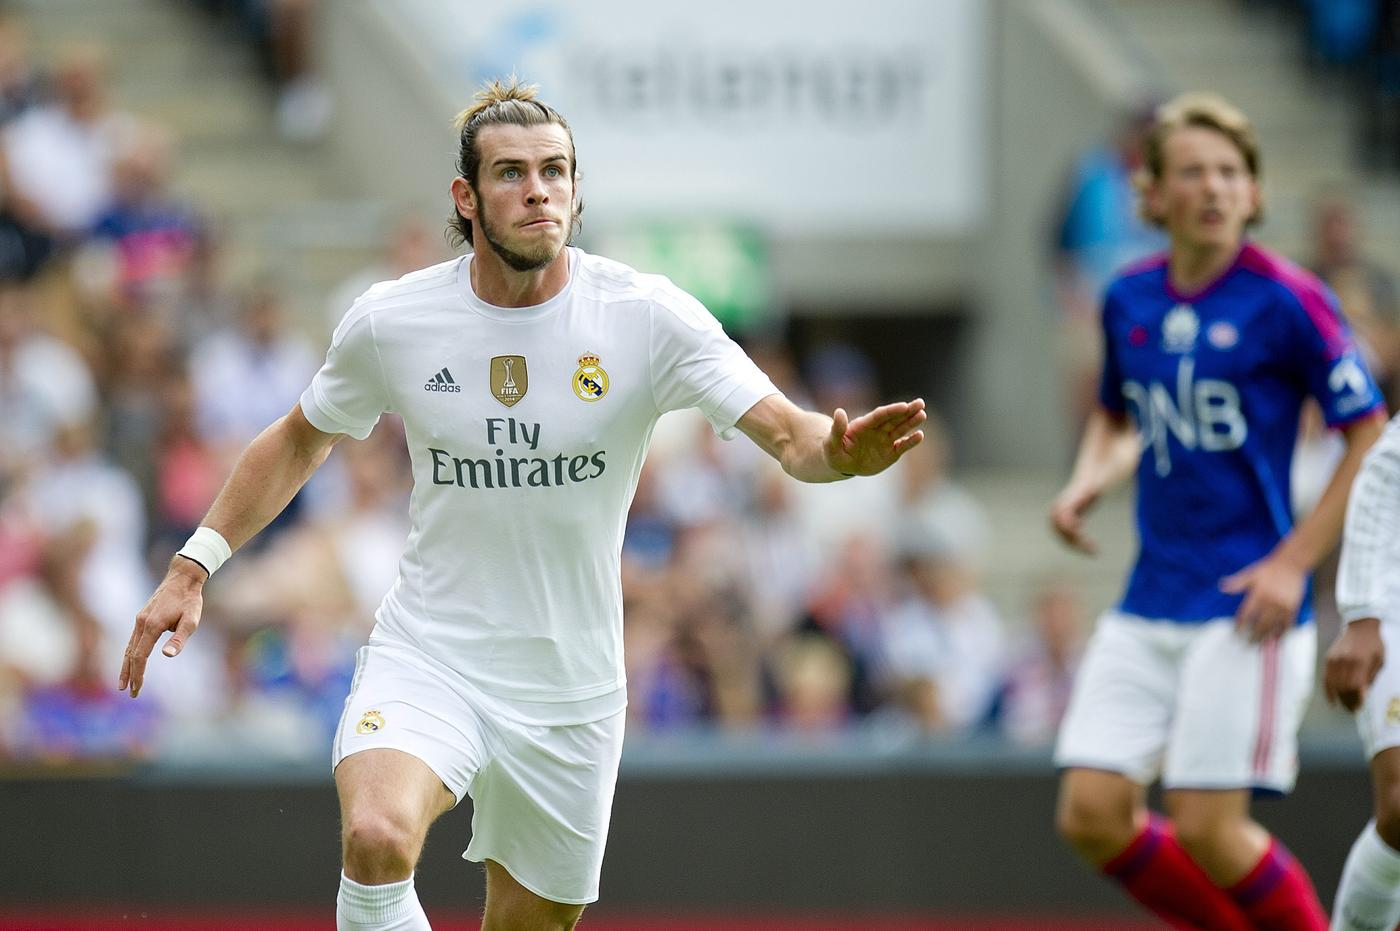 Manchester United readying £65million plus David De Gea offer to seal Gareth Bale transfer – report